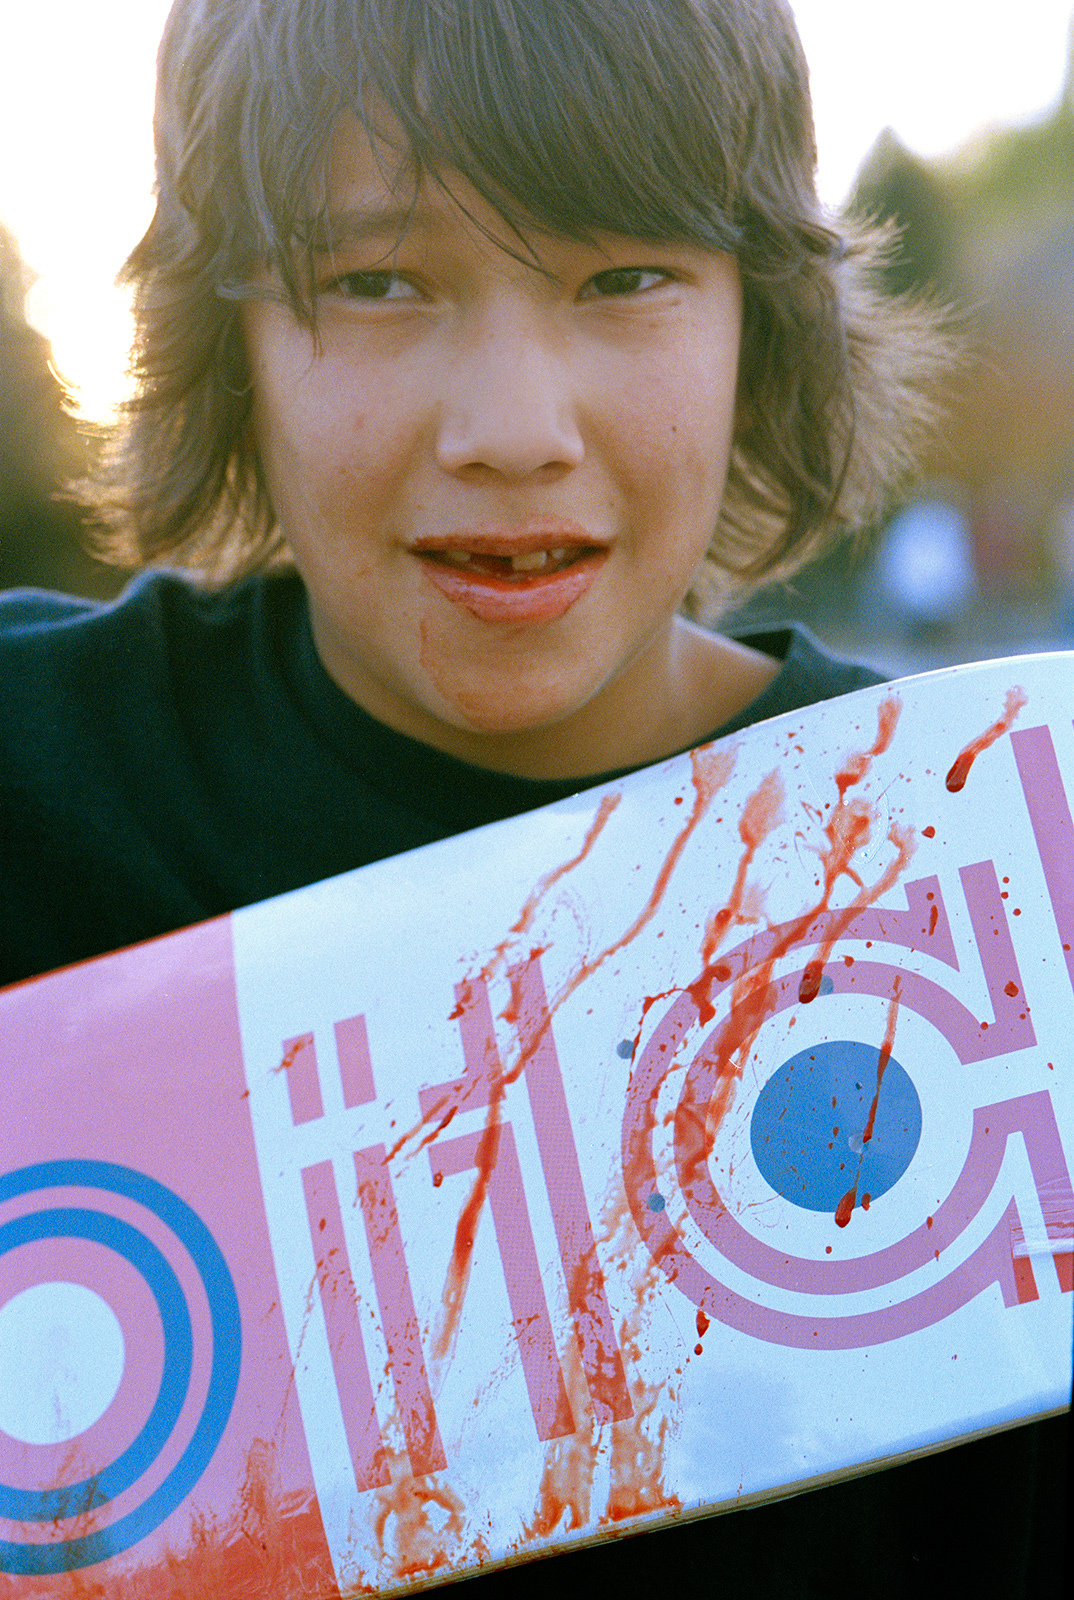 bleeding-kid-tooth-knocked-out-saskatoon-2008-retouch-adjust.jpg